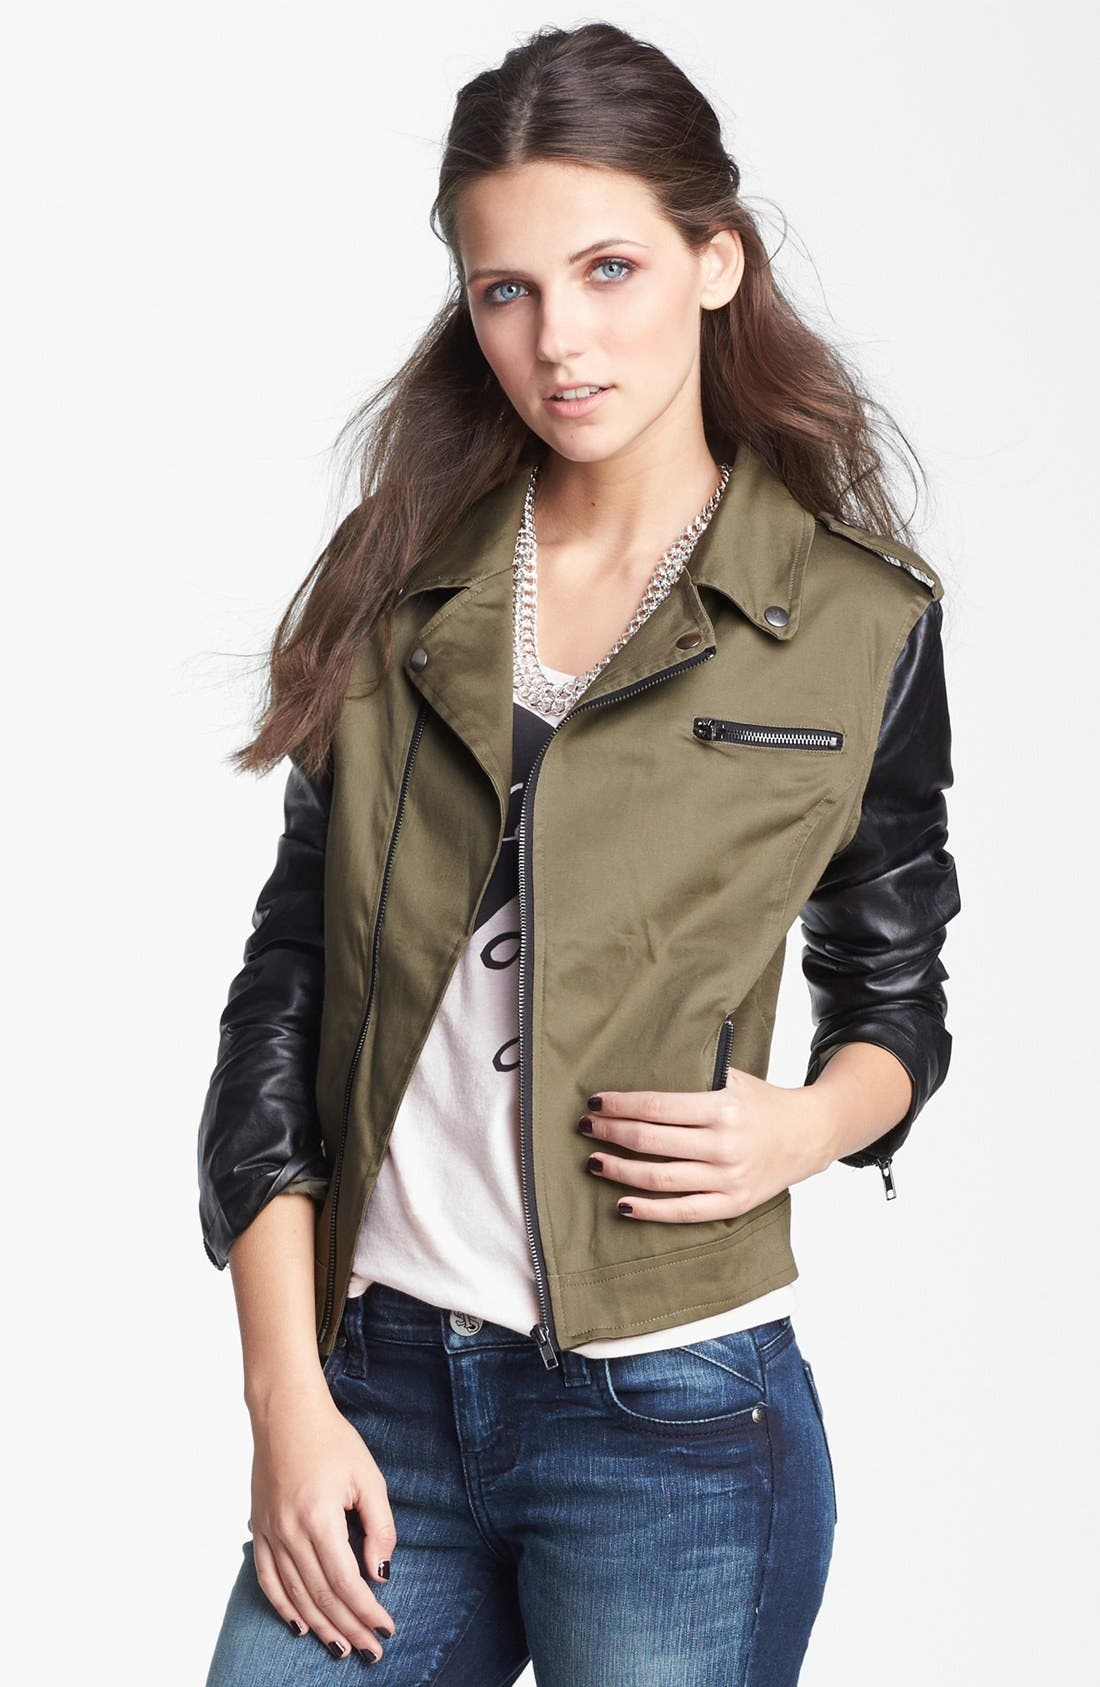 Alternate Image 1 Selected - Coffee Shop Mixed Media Moto Jacket (Juniors) (Online Only)